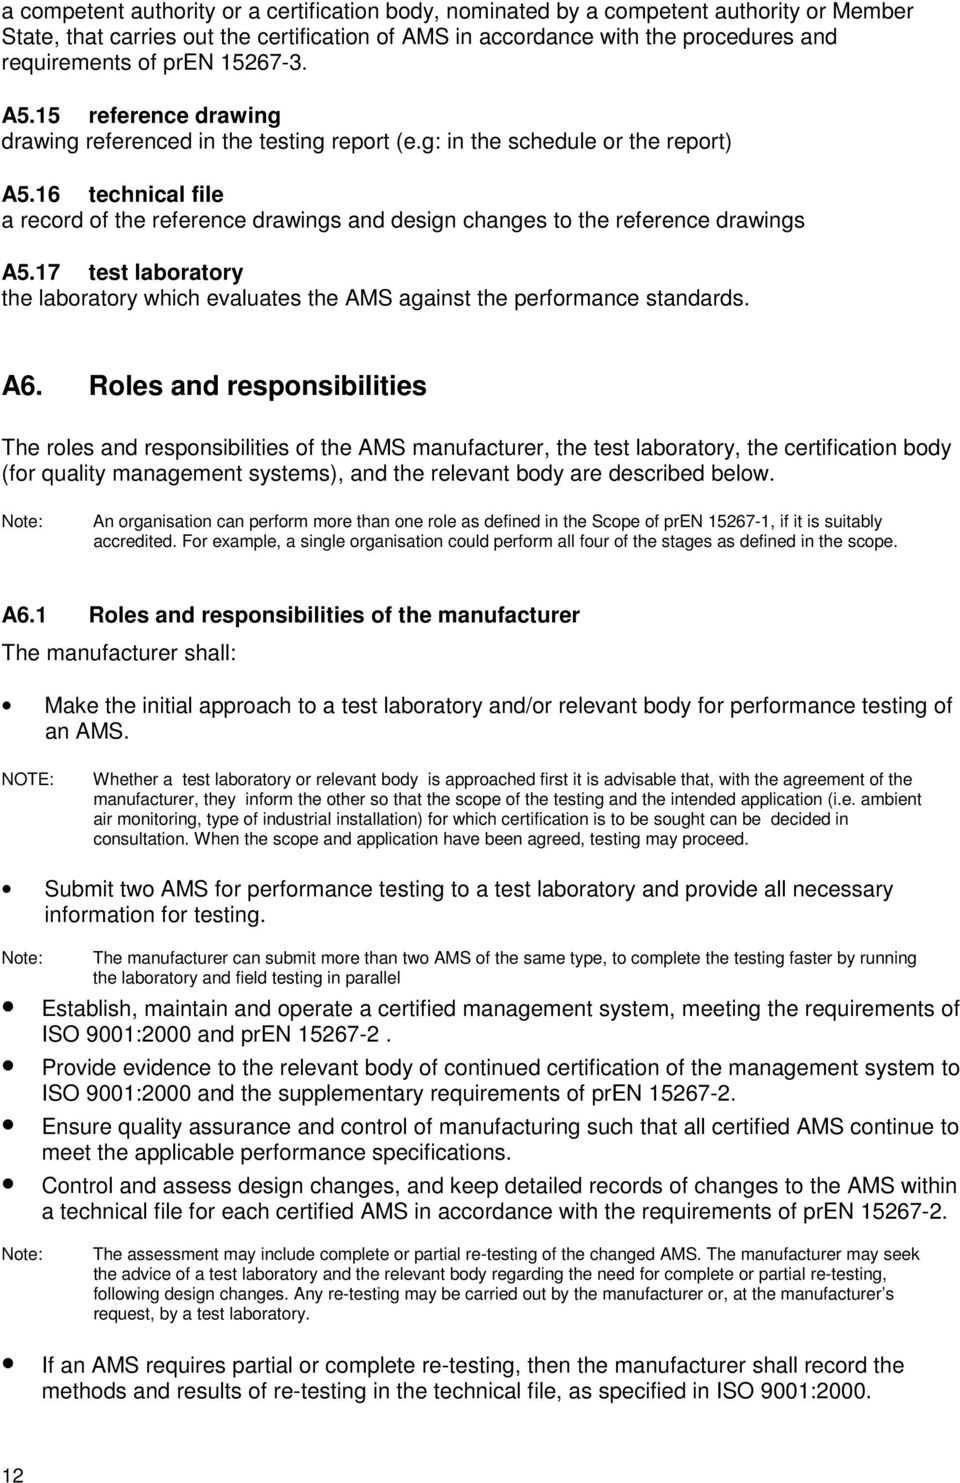 16 technical file a record of the reference drawings and design changes to the reference drawings A5.17 test laboratory the laboratory which evaluates the AMS against the performance standards. A6.